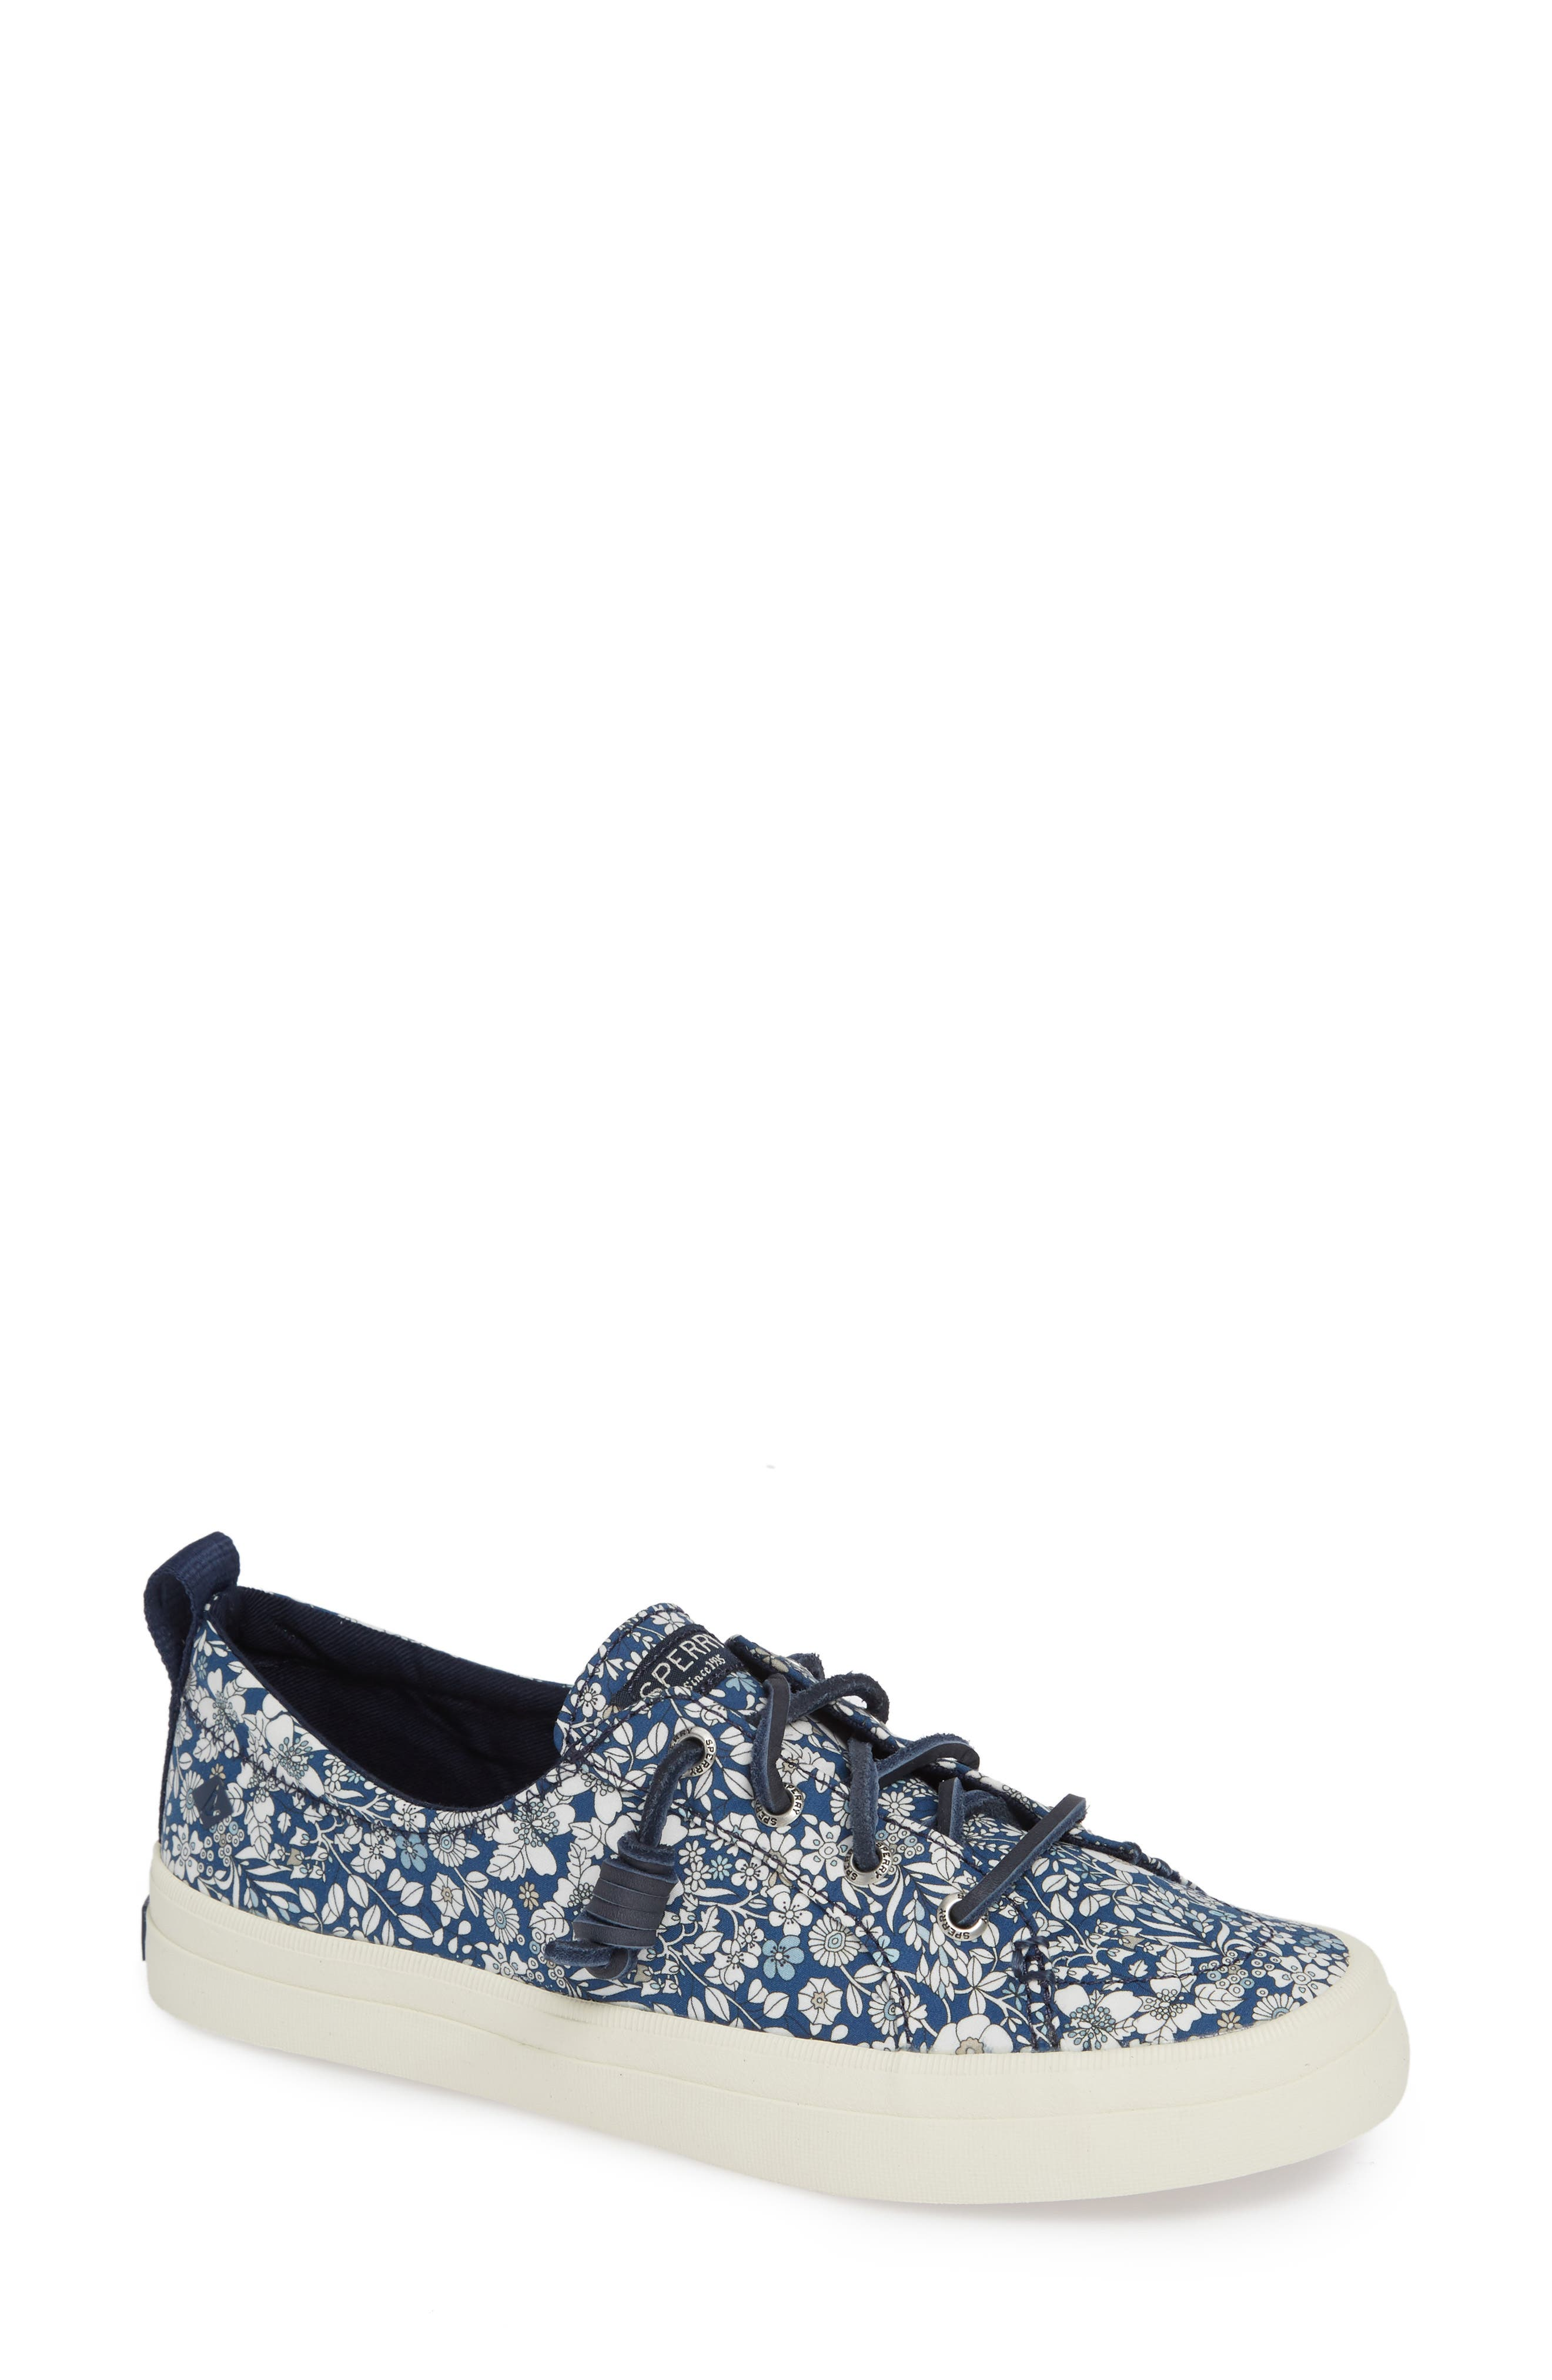 Crest Vibe Sneaker,                         Main,                         color, Navy/ Multi Canvas